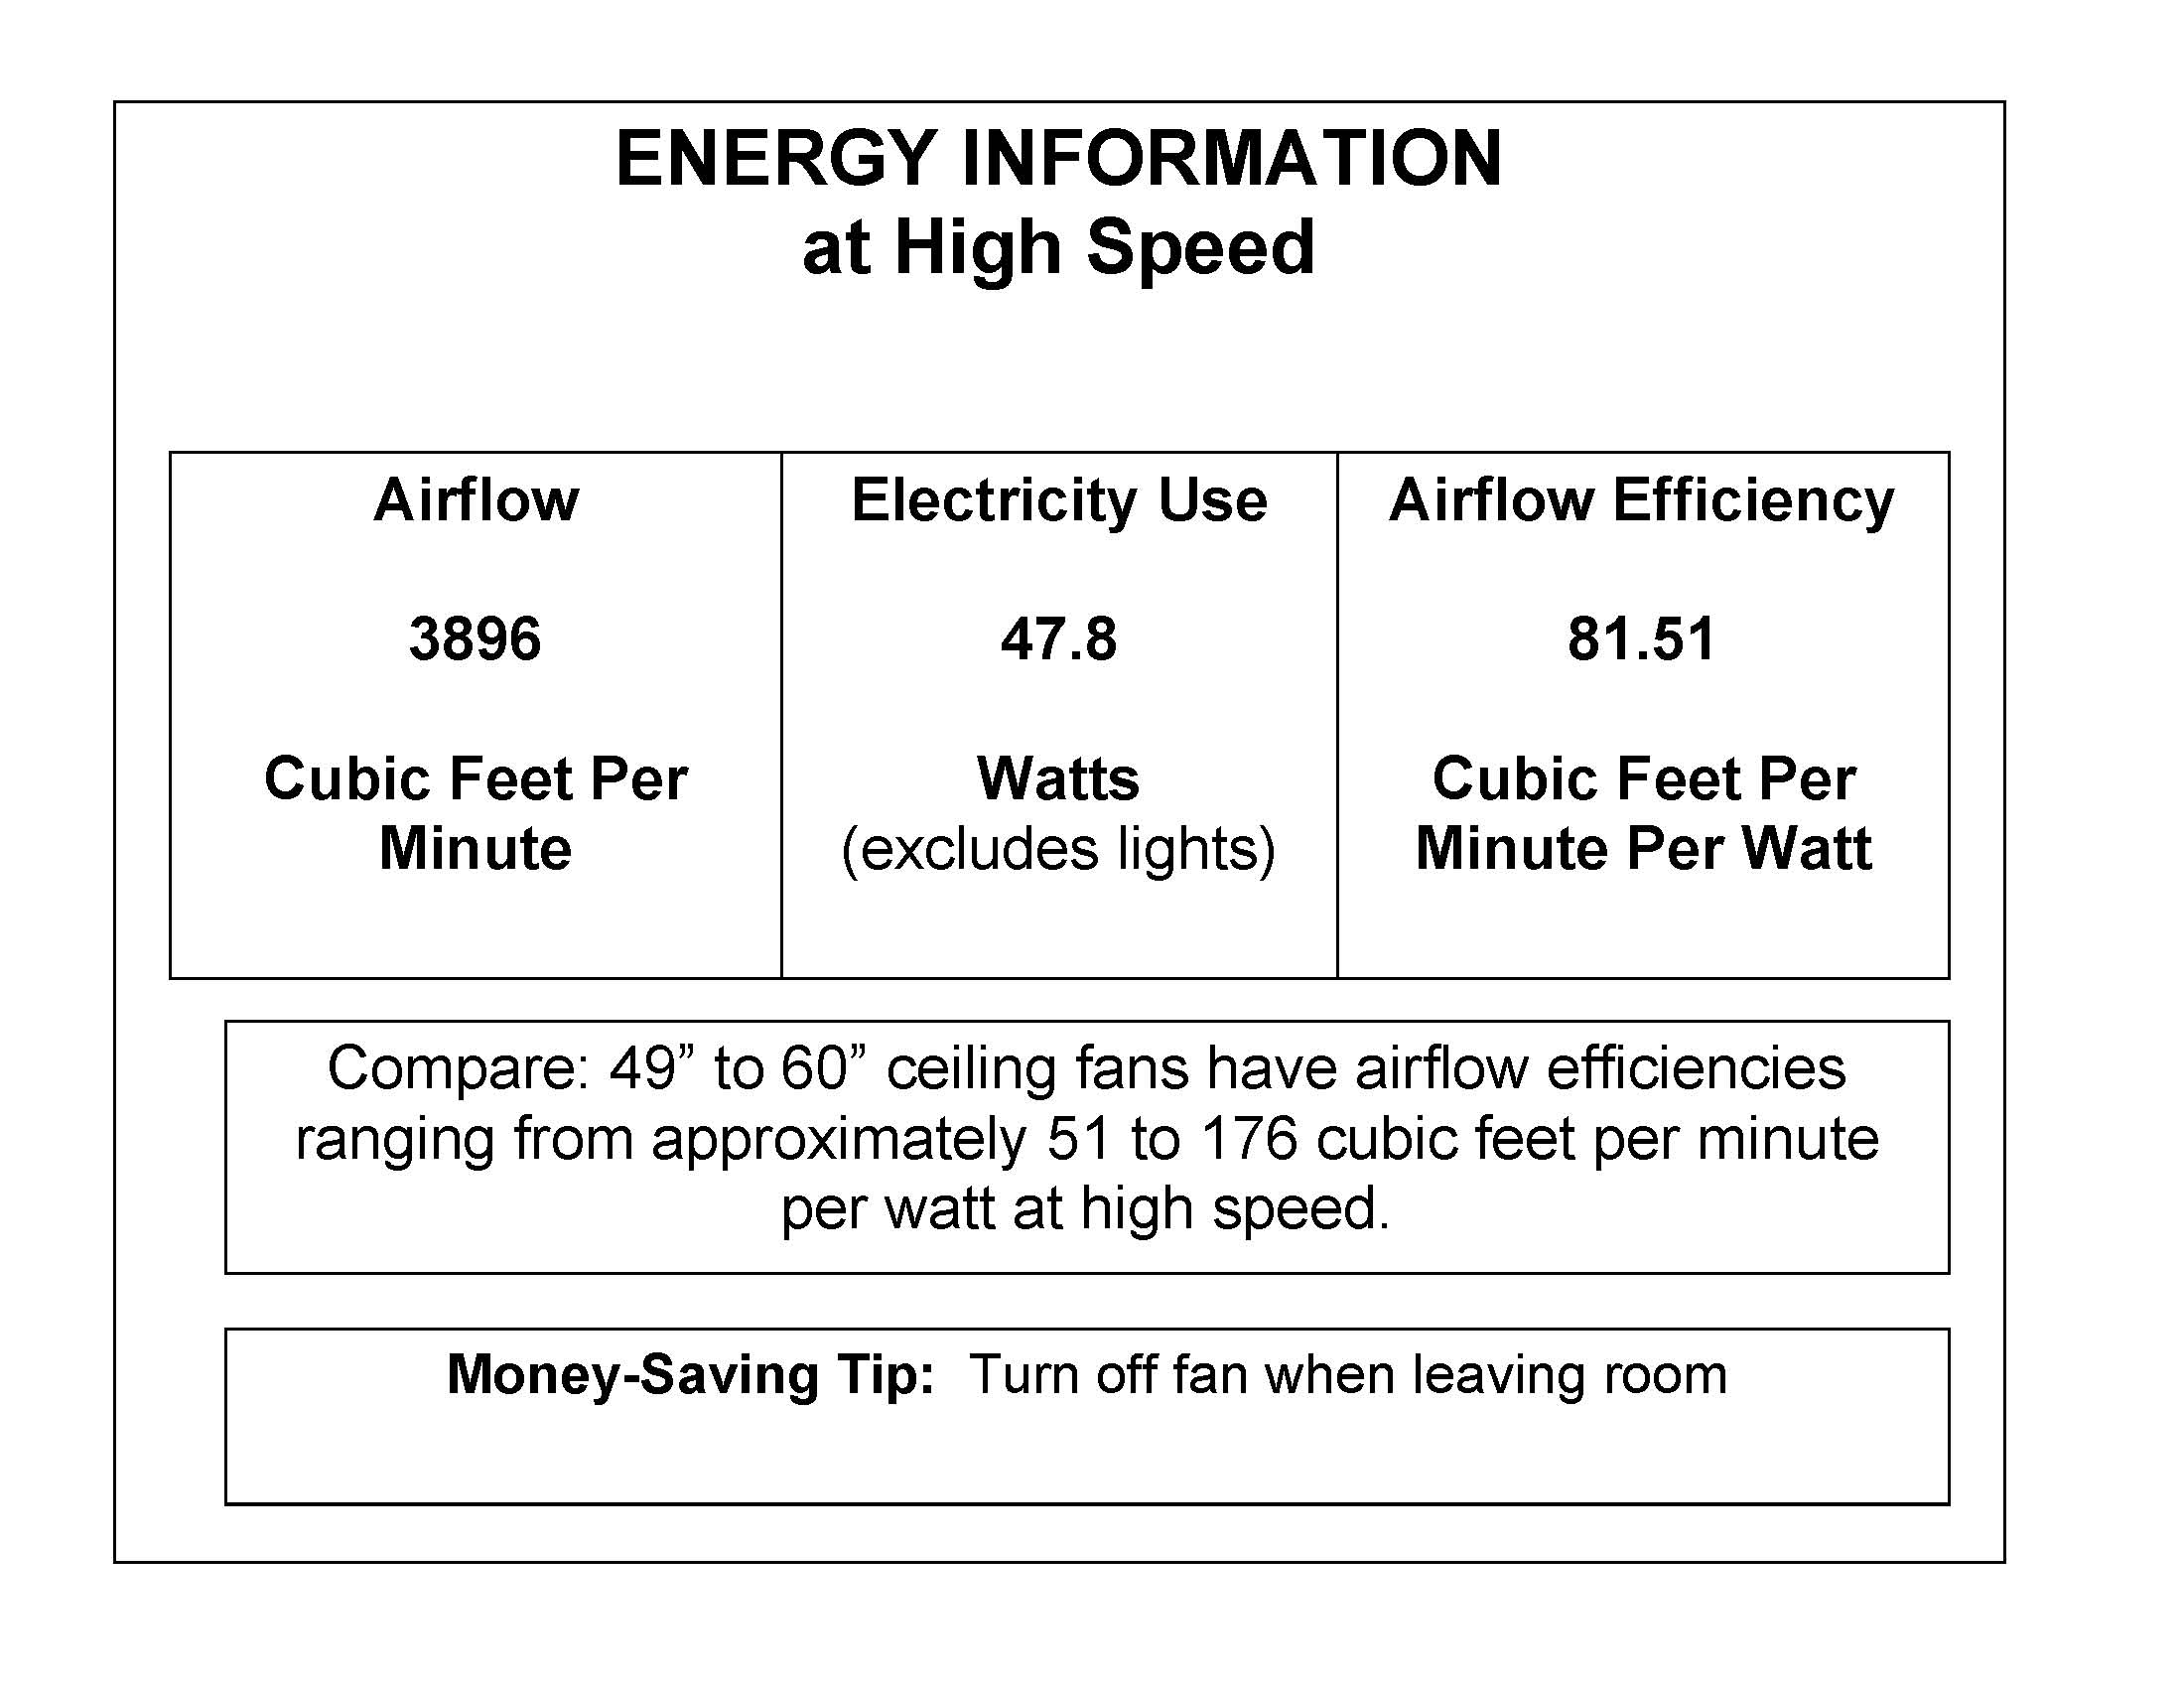 Manuals for harbor breeze ceiling fans mar 2018 energy guide aloadofball Choice Image